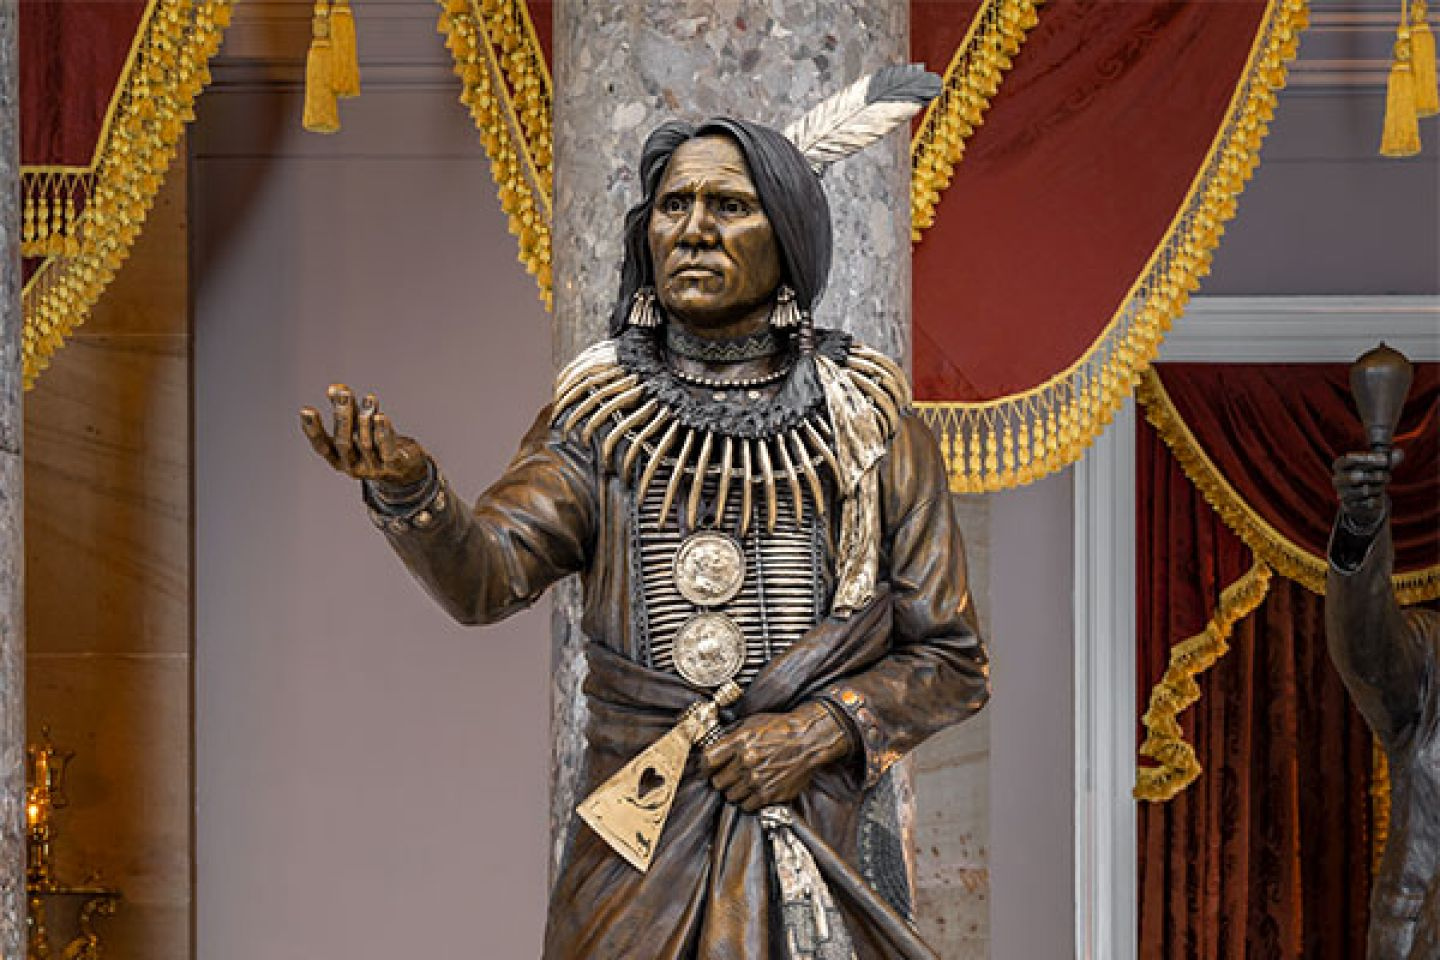 This statue of Standing Bear was given to the U.S. Capitol's National Statuary Hall Collection by Nebraska in 2019.